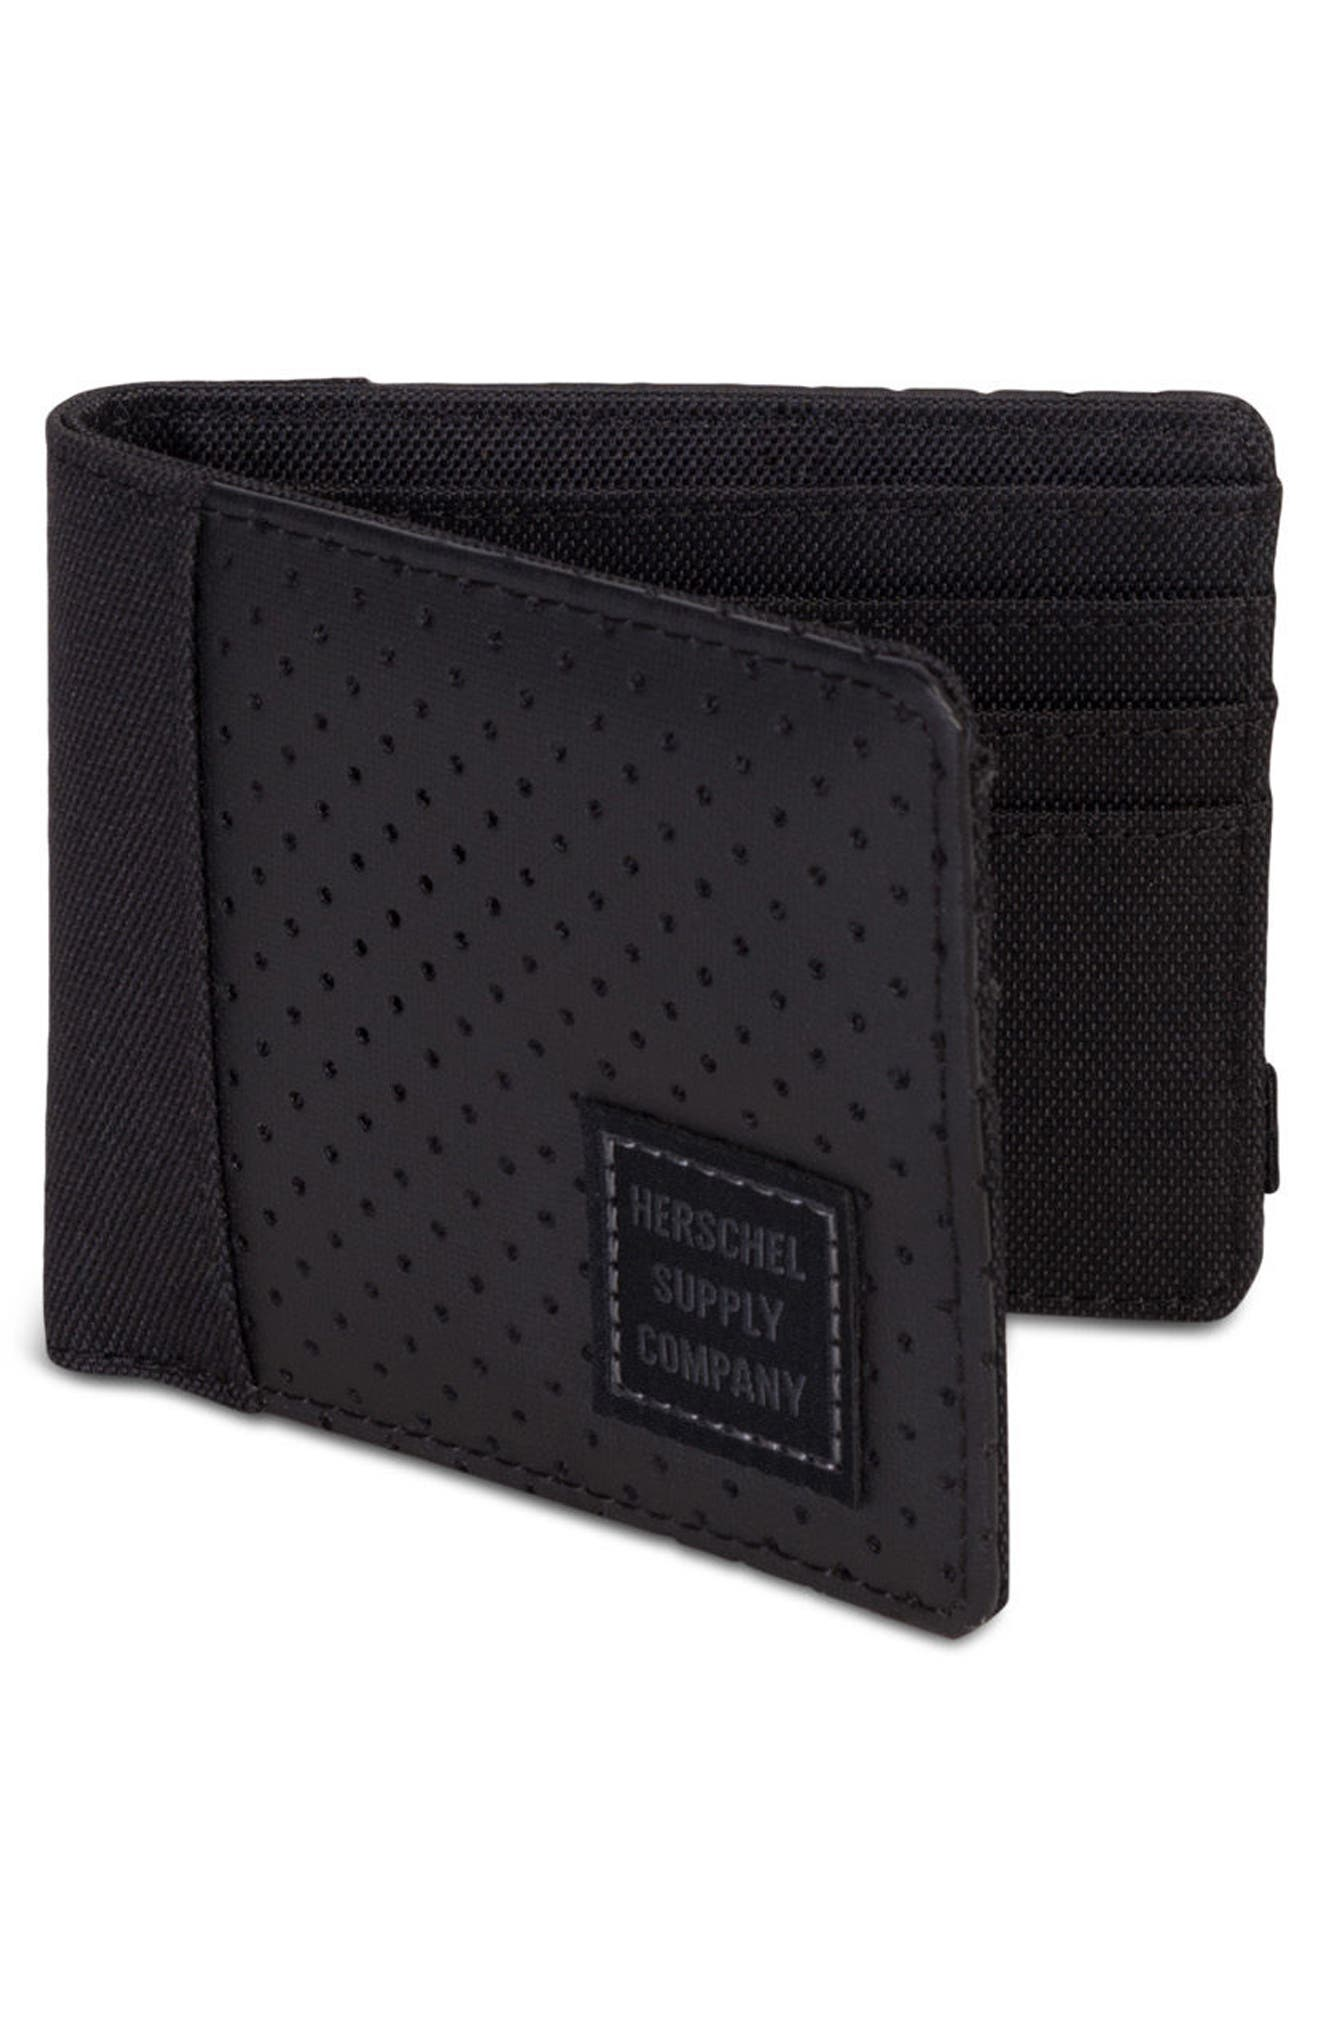 Edward Aspect Perforated Wallet,                             Alternate thumbnail 2, color,                             001